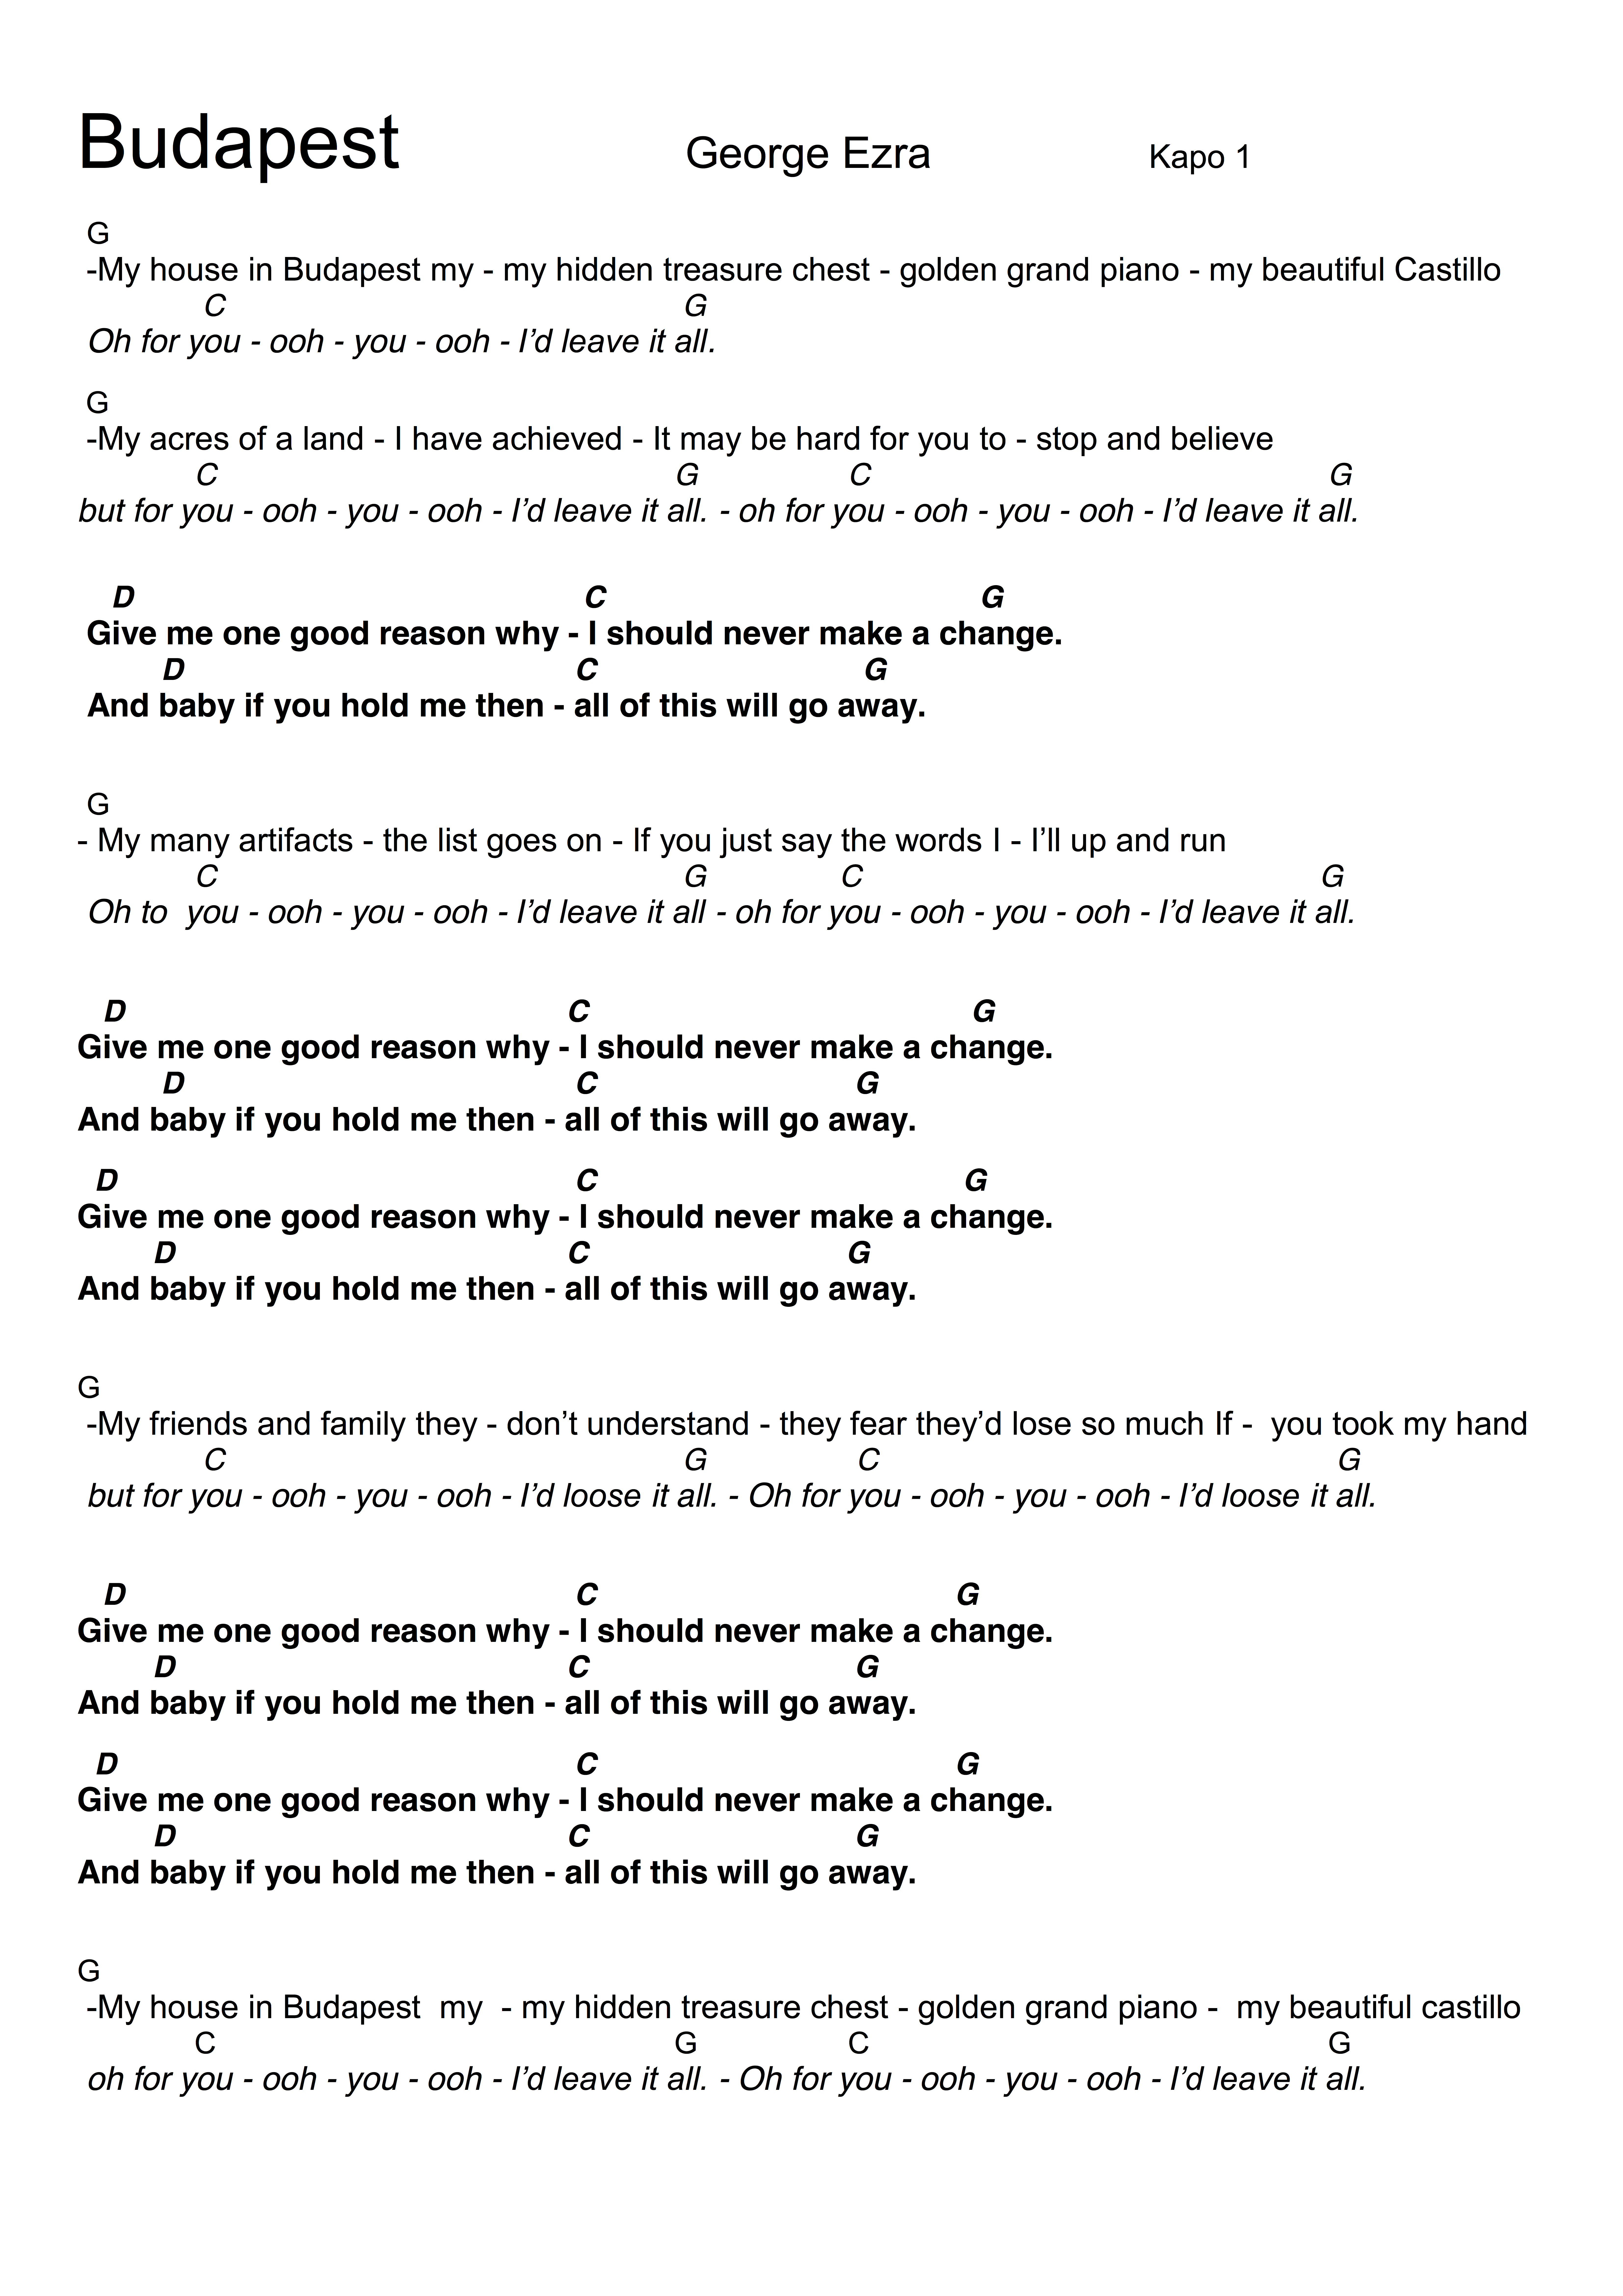 Budapest George Ezra Chords Lyrics Tutorial Ukulele Queen In